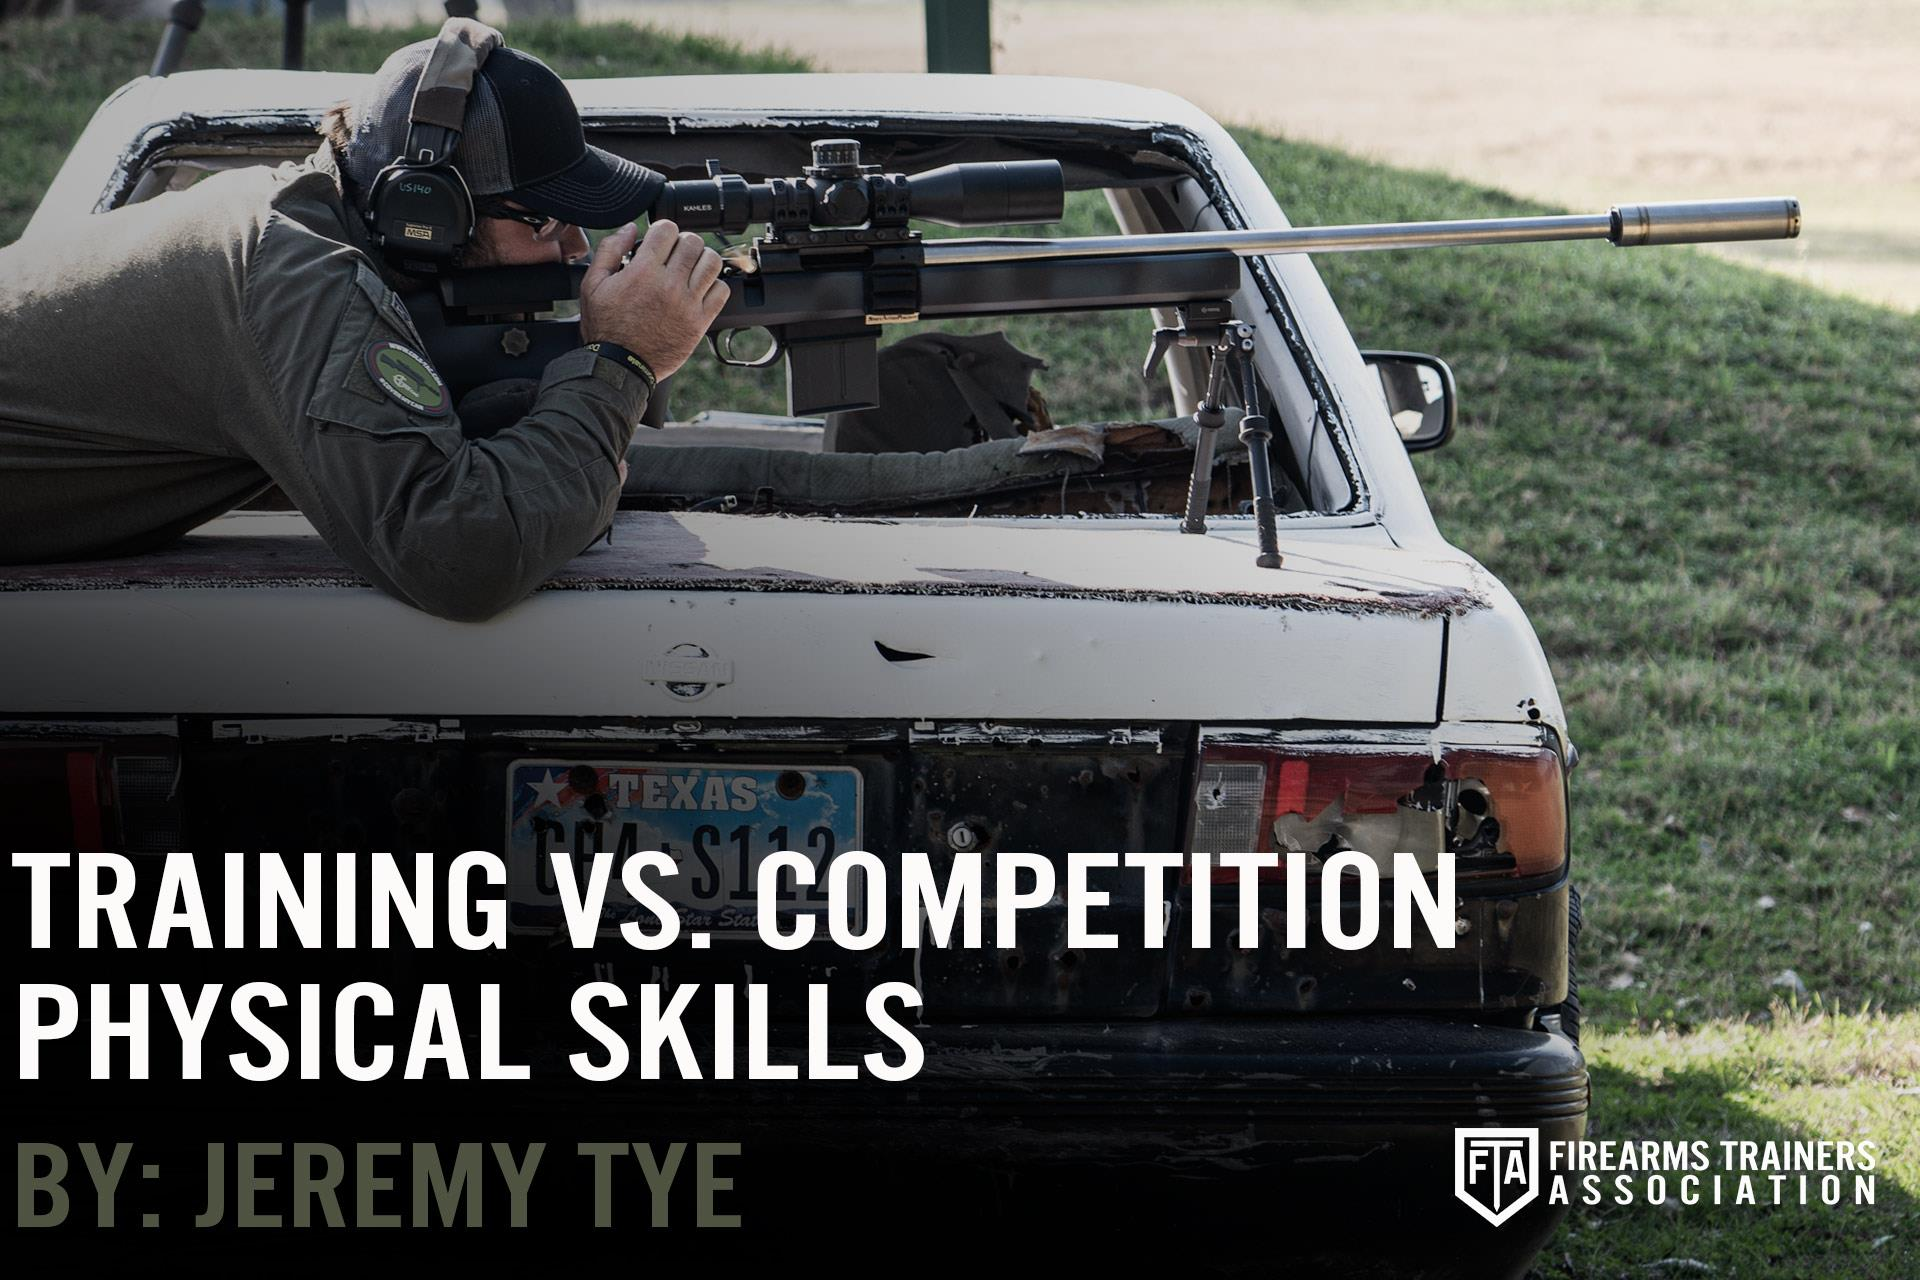 Training Vs. Competition: Physical Skills